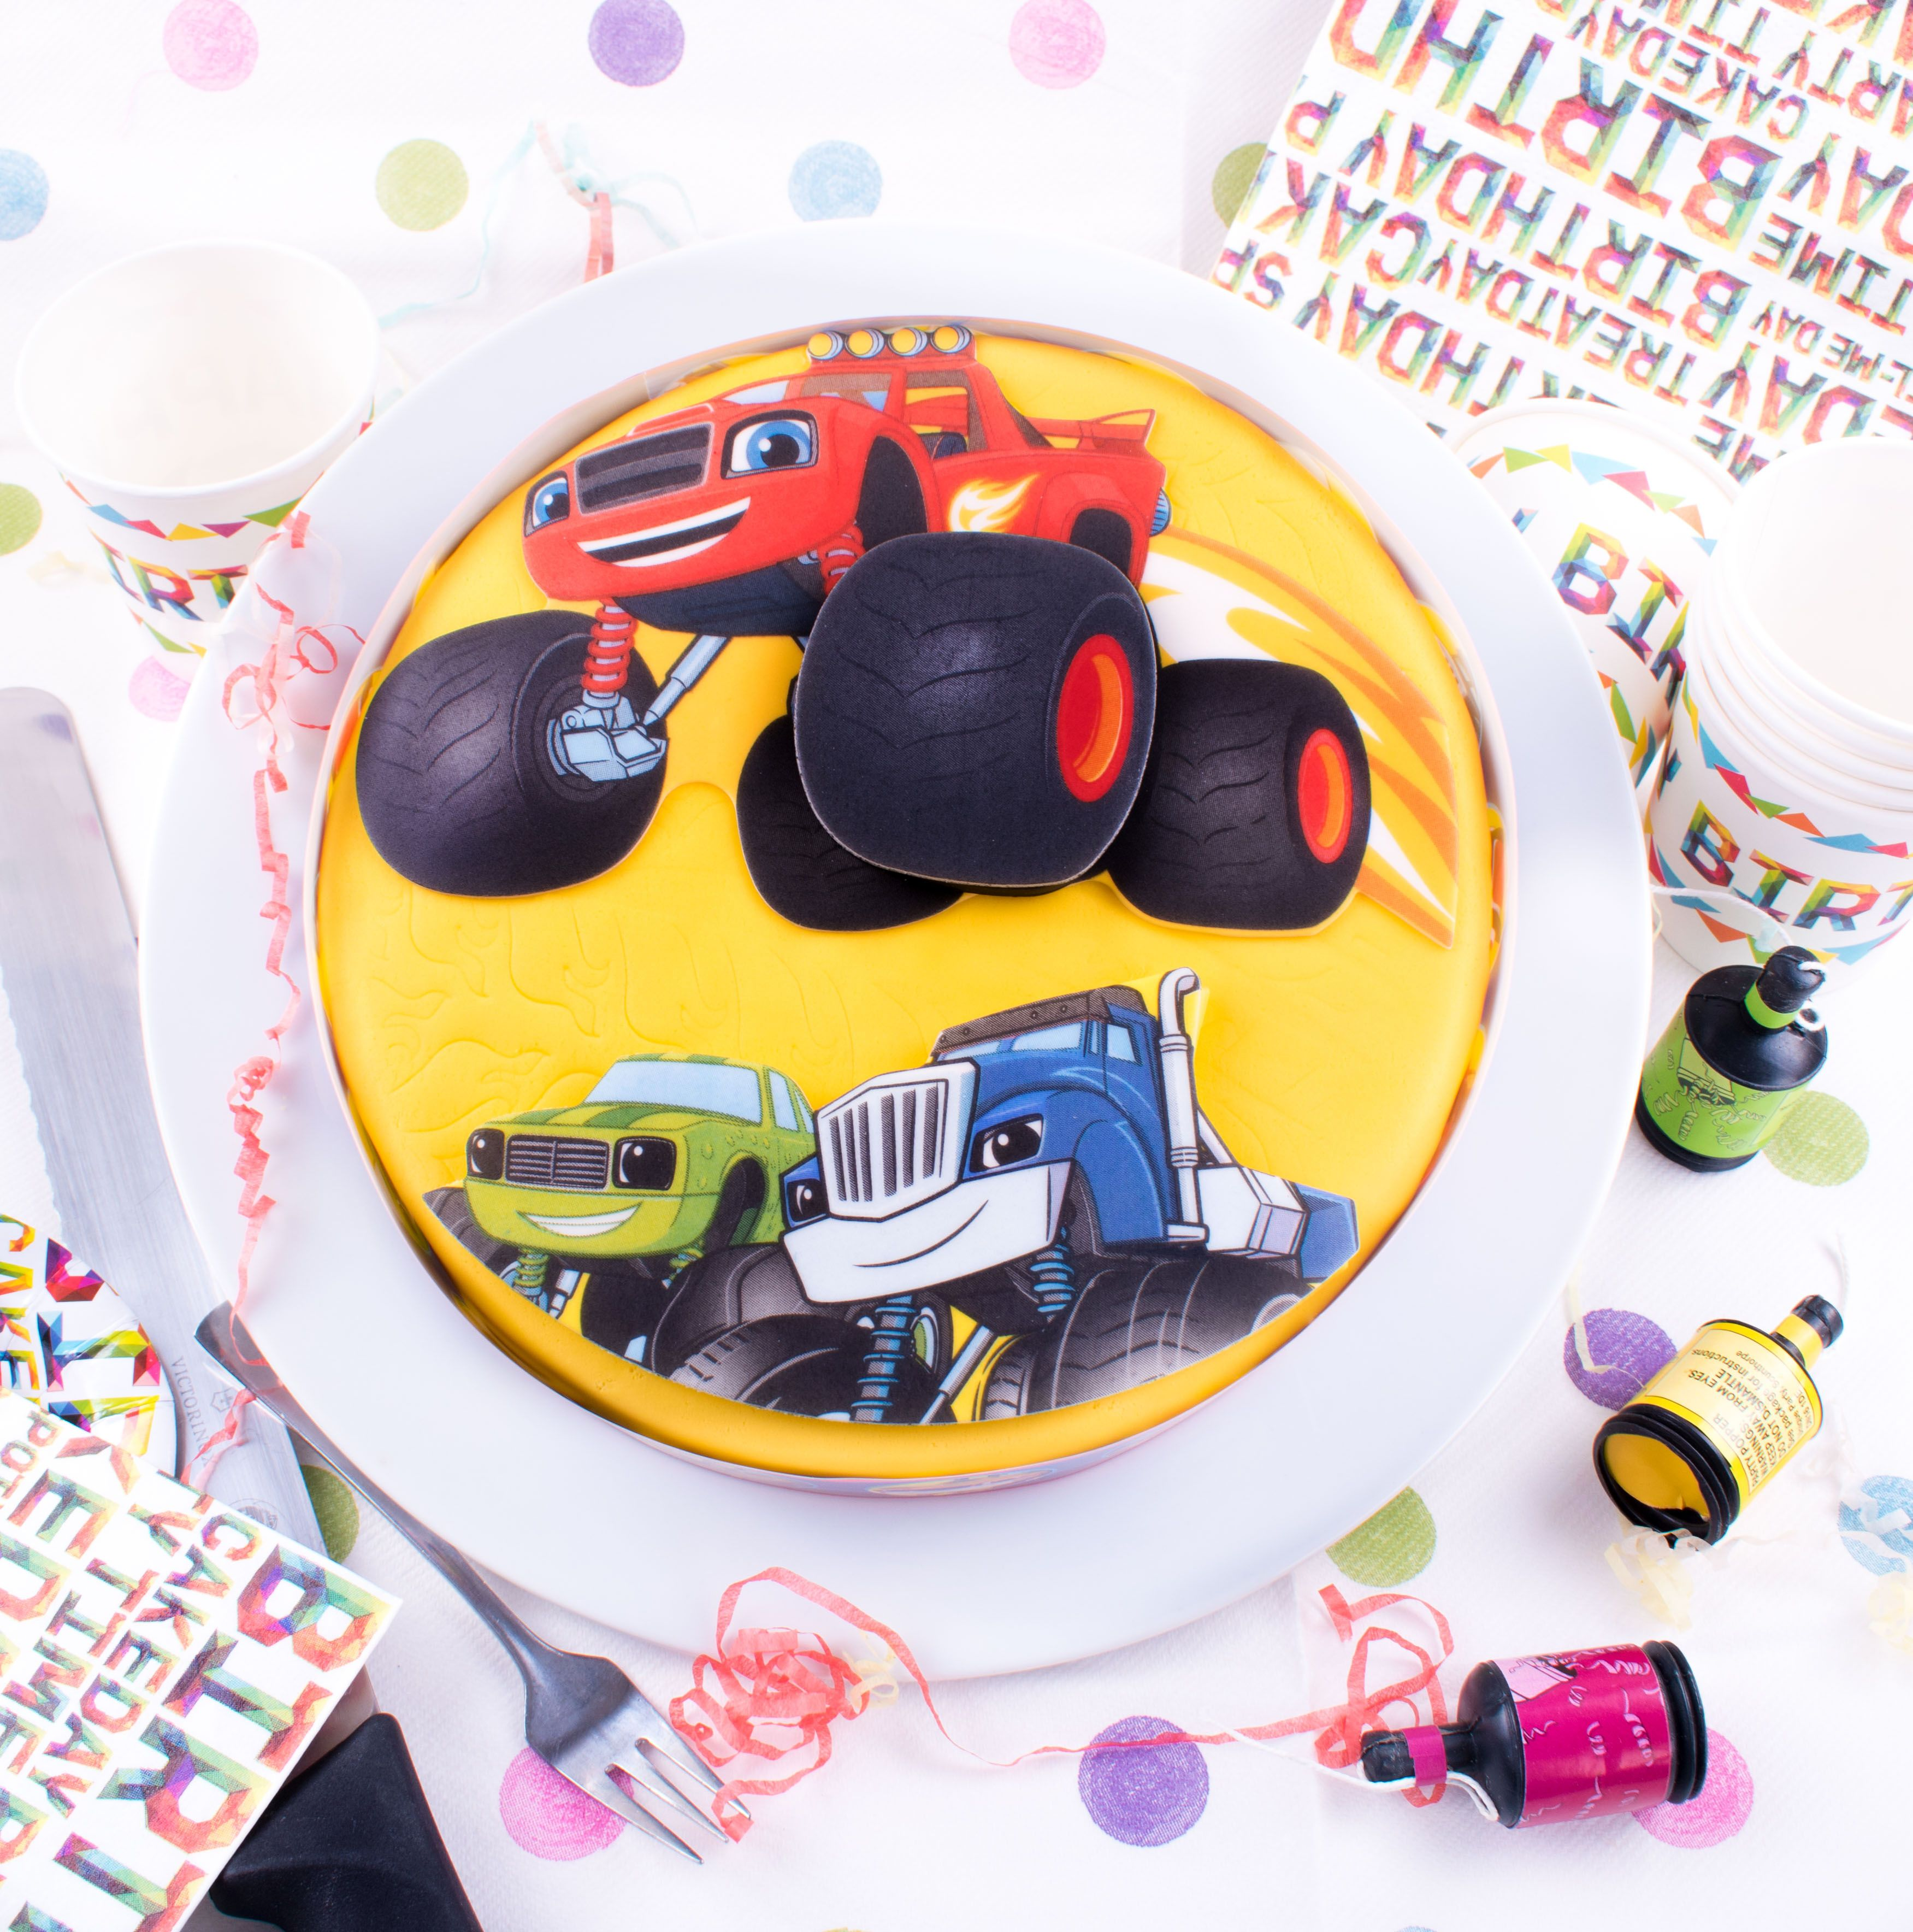 Kids hooked on Blaze and the Monster Machines? Theme their party ...